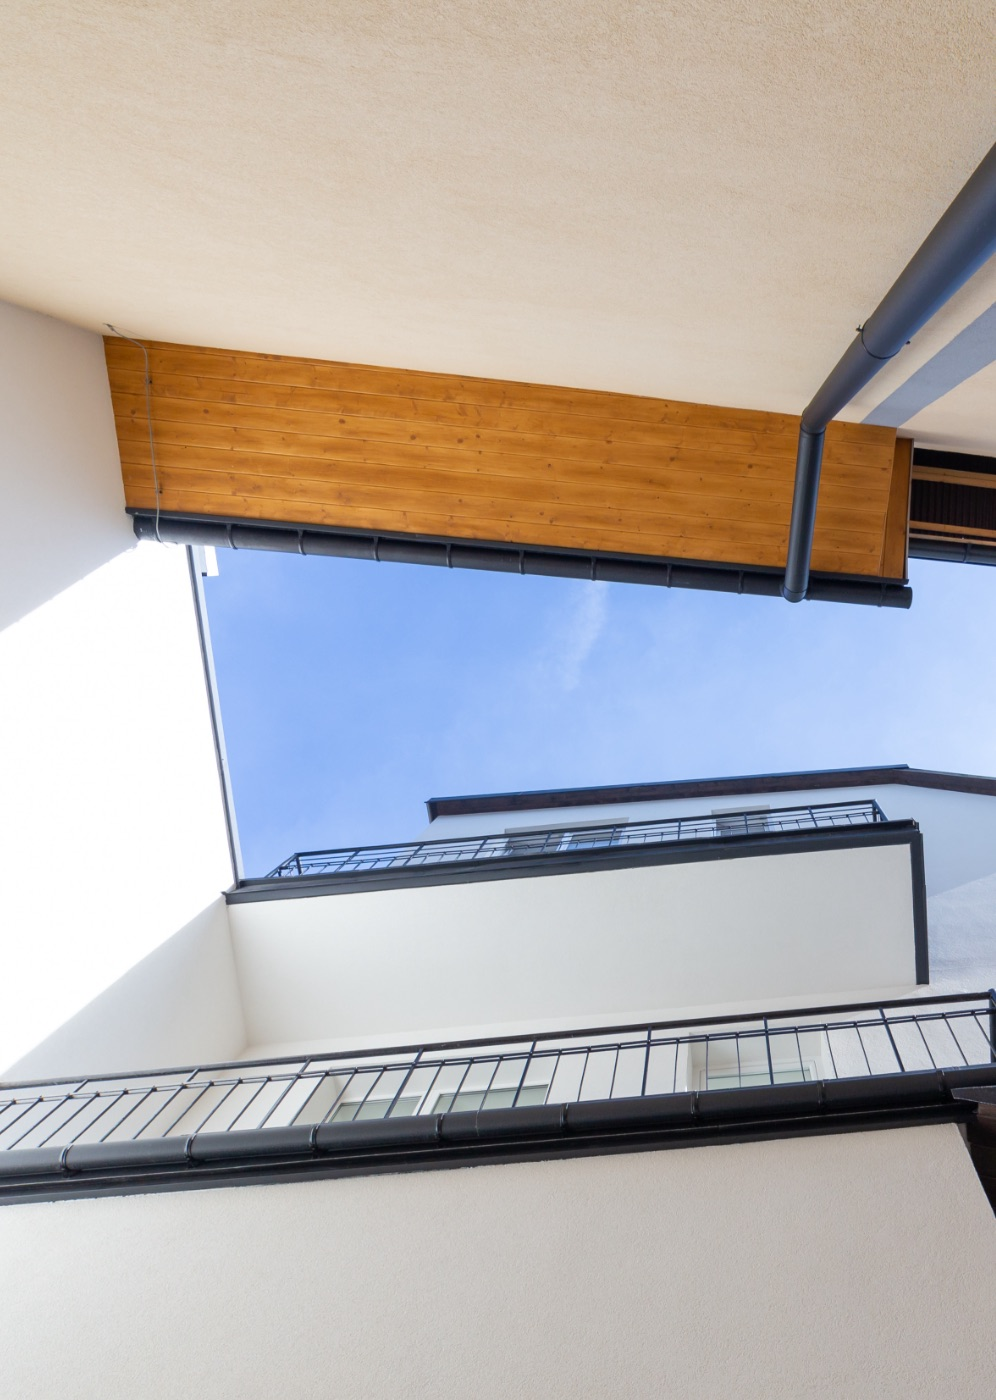 Modern design architecture with camera facing upwards towards the sky